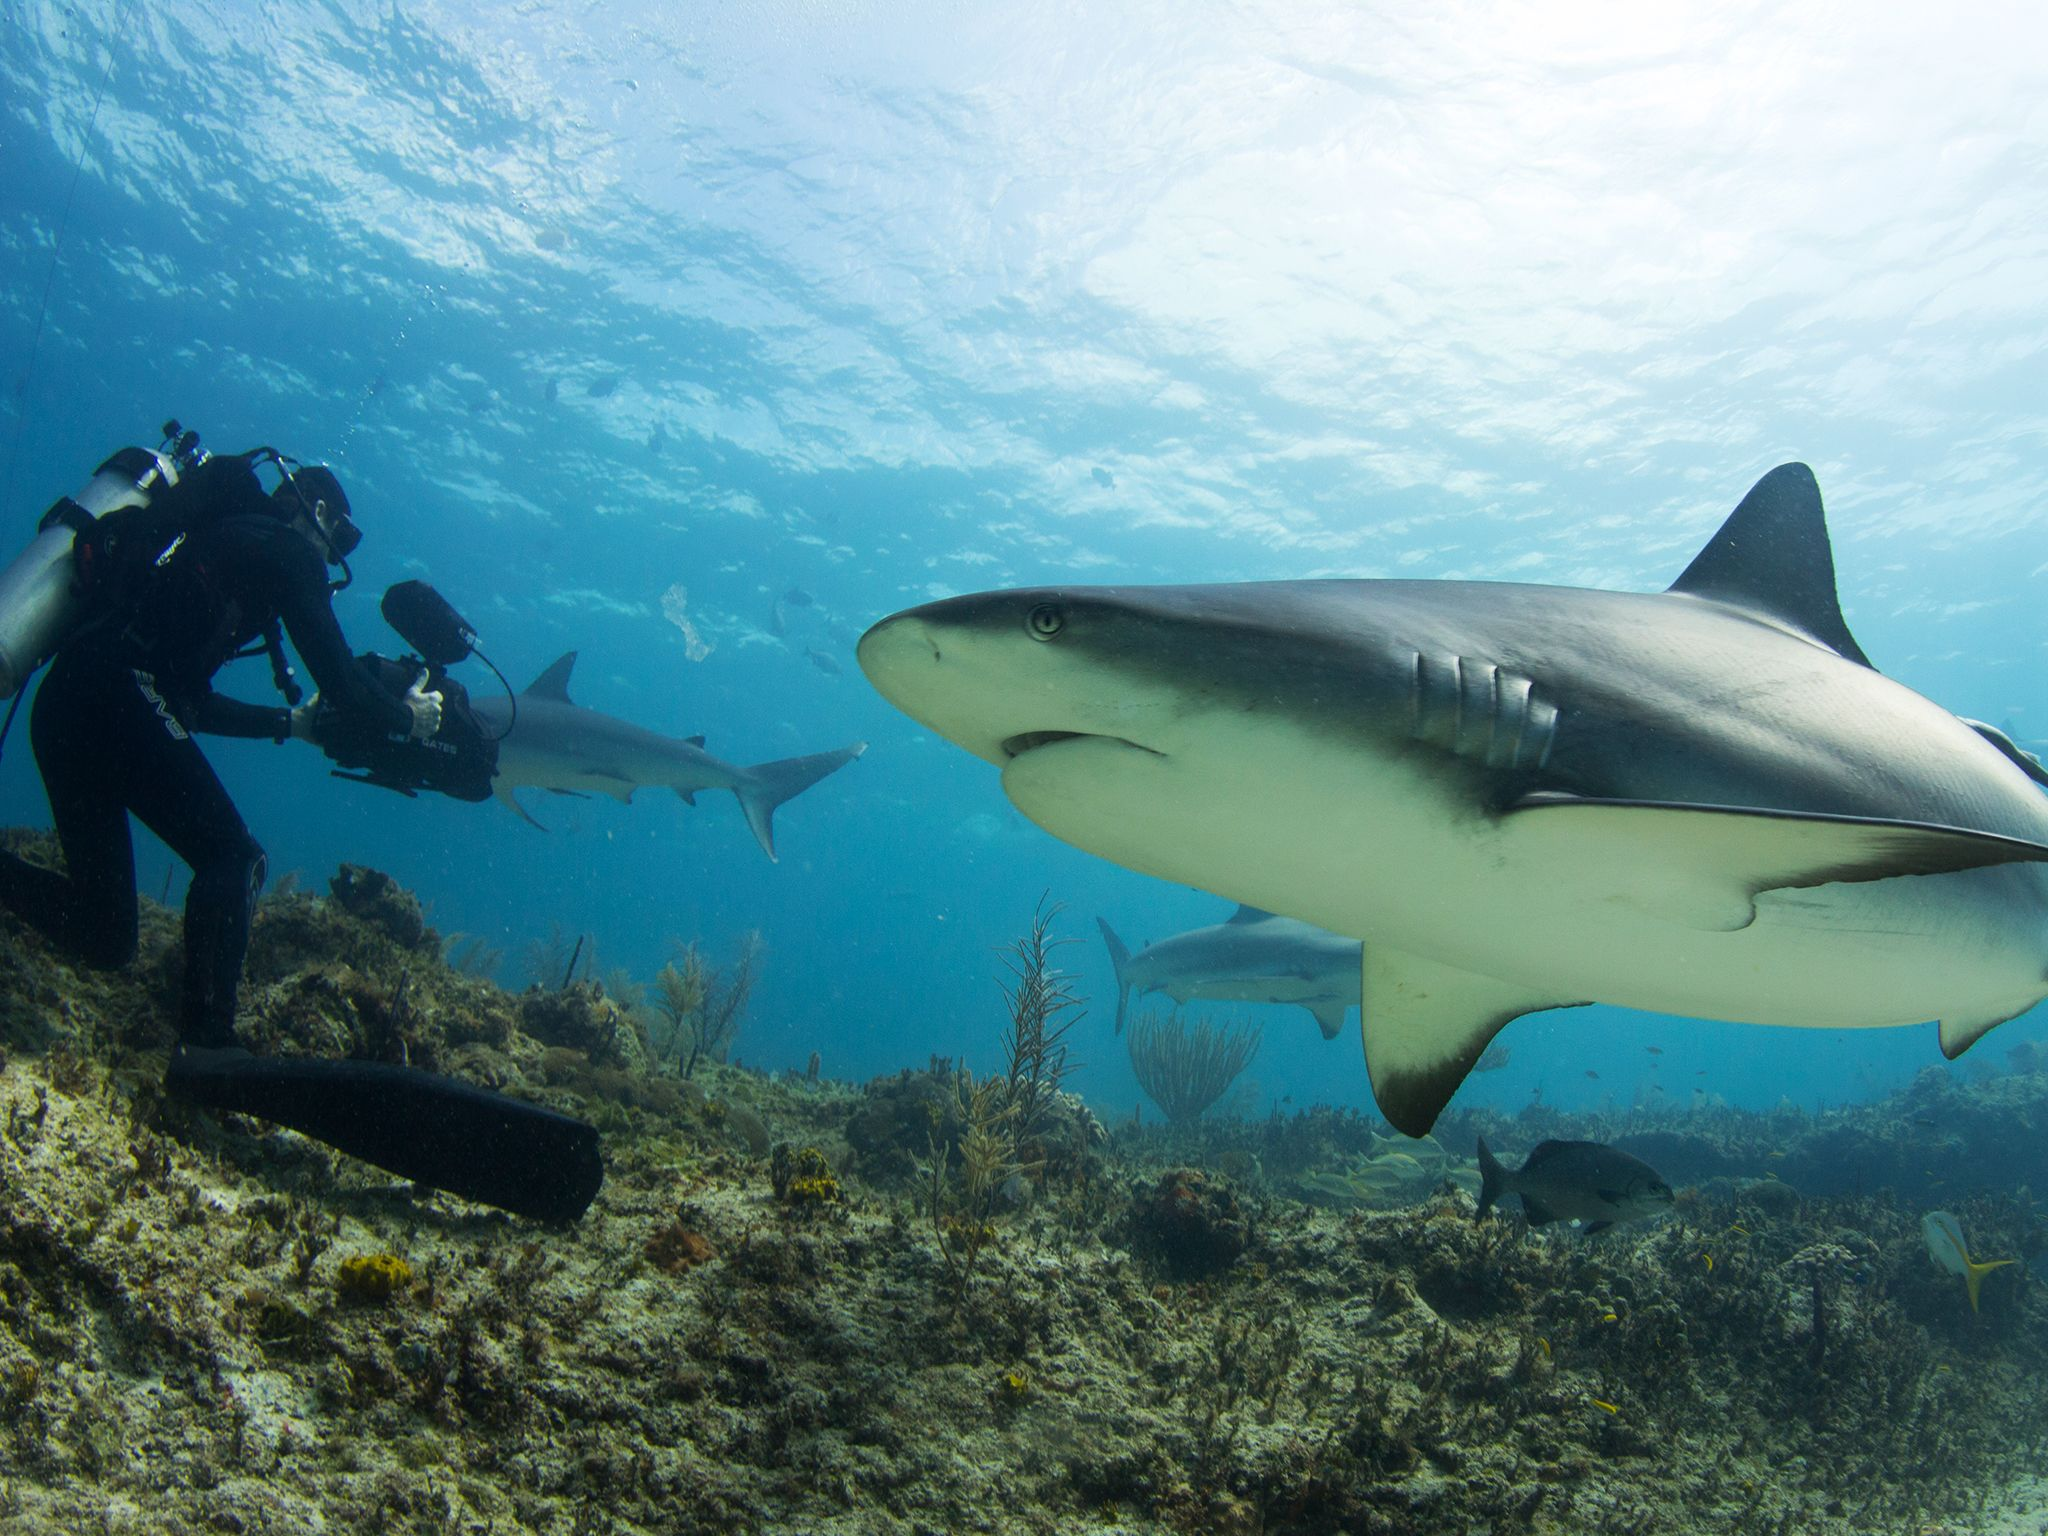 Palmyra Atoll: Tiger Shark and camerman. Dr. M. Sanjayan dives deep into the oceans to find out h... [Photo of the day - مارس 2015]